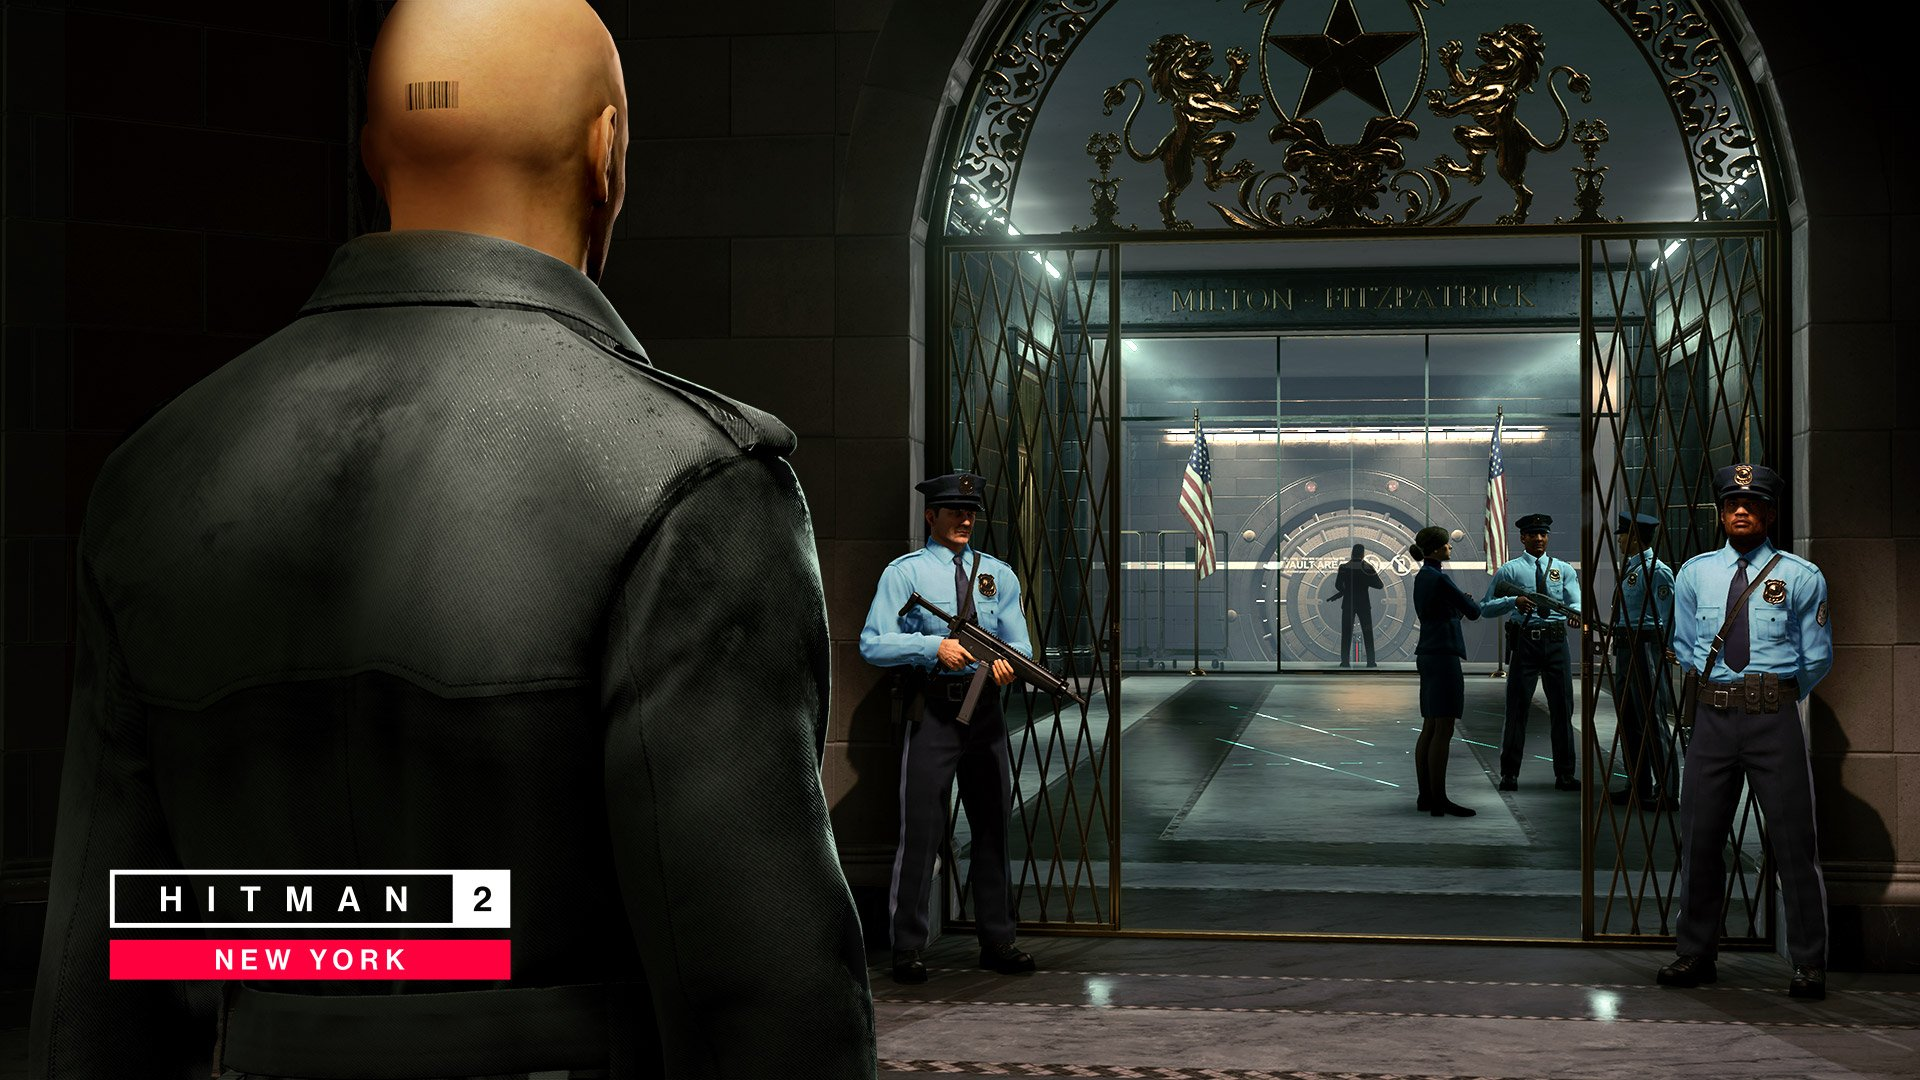 Hitman 2's New York bank level is full of possibilities screenshot